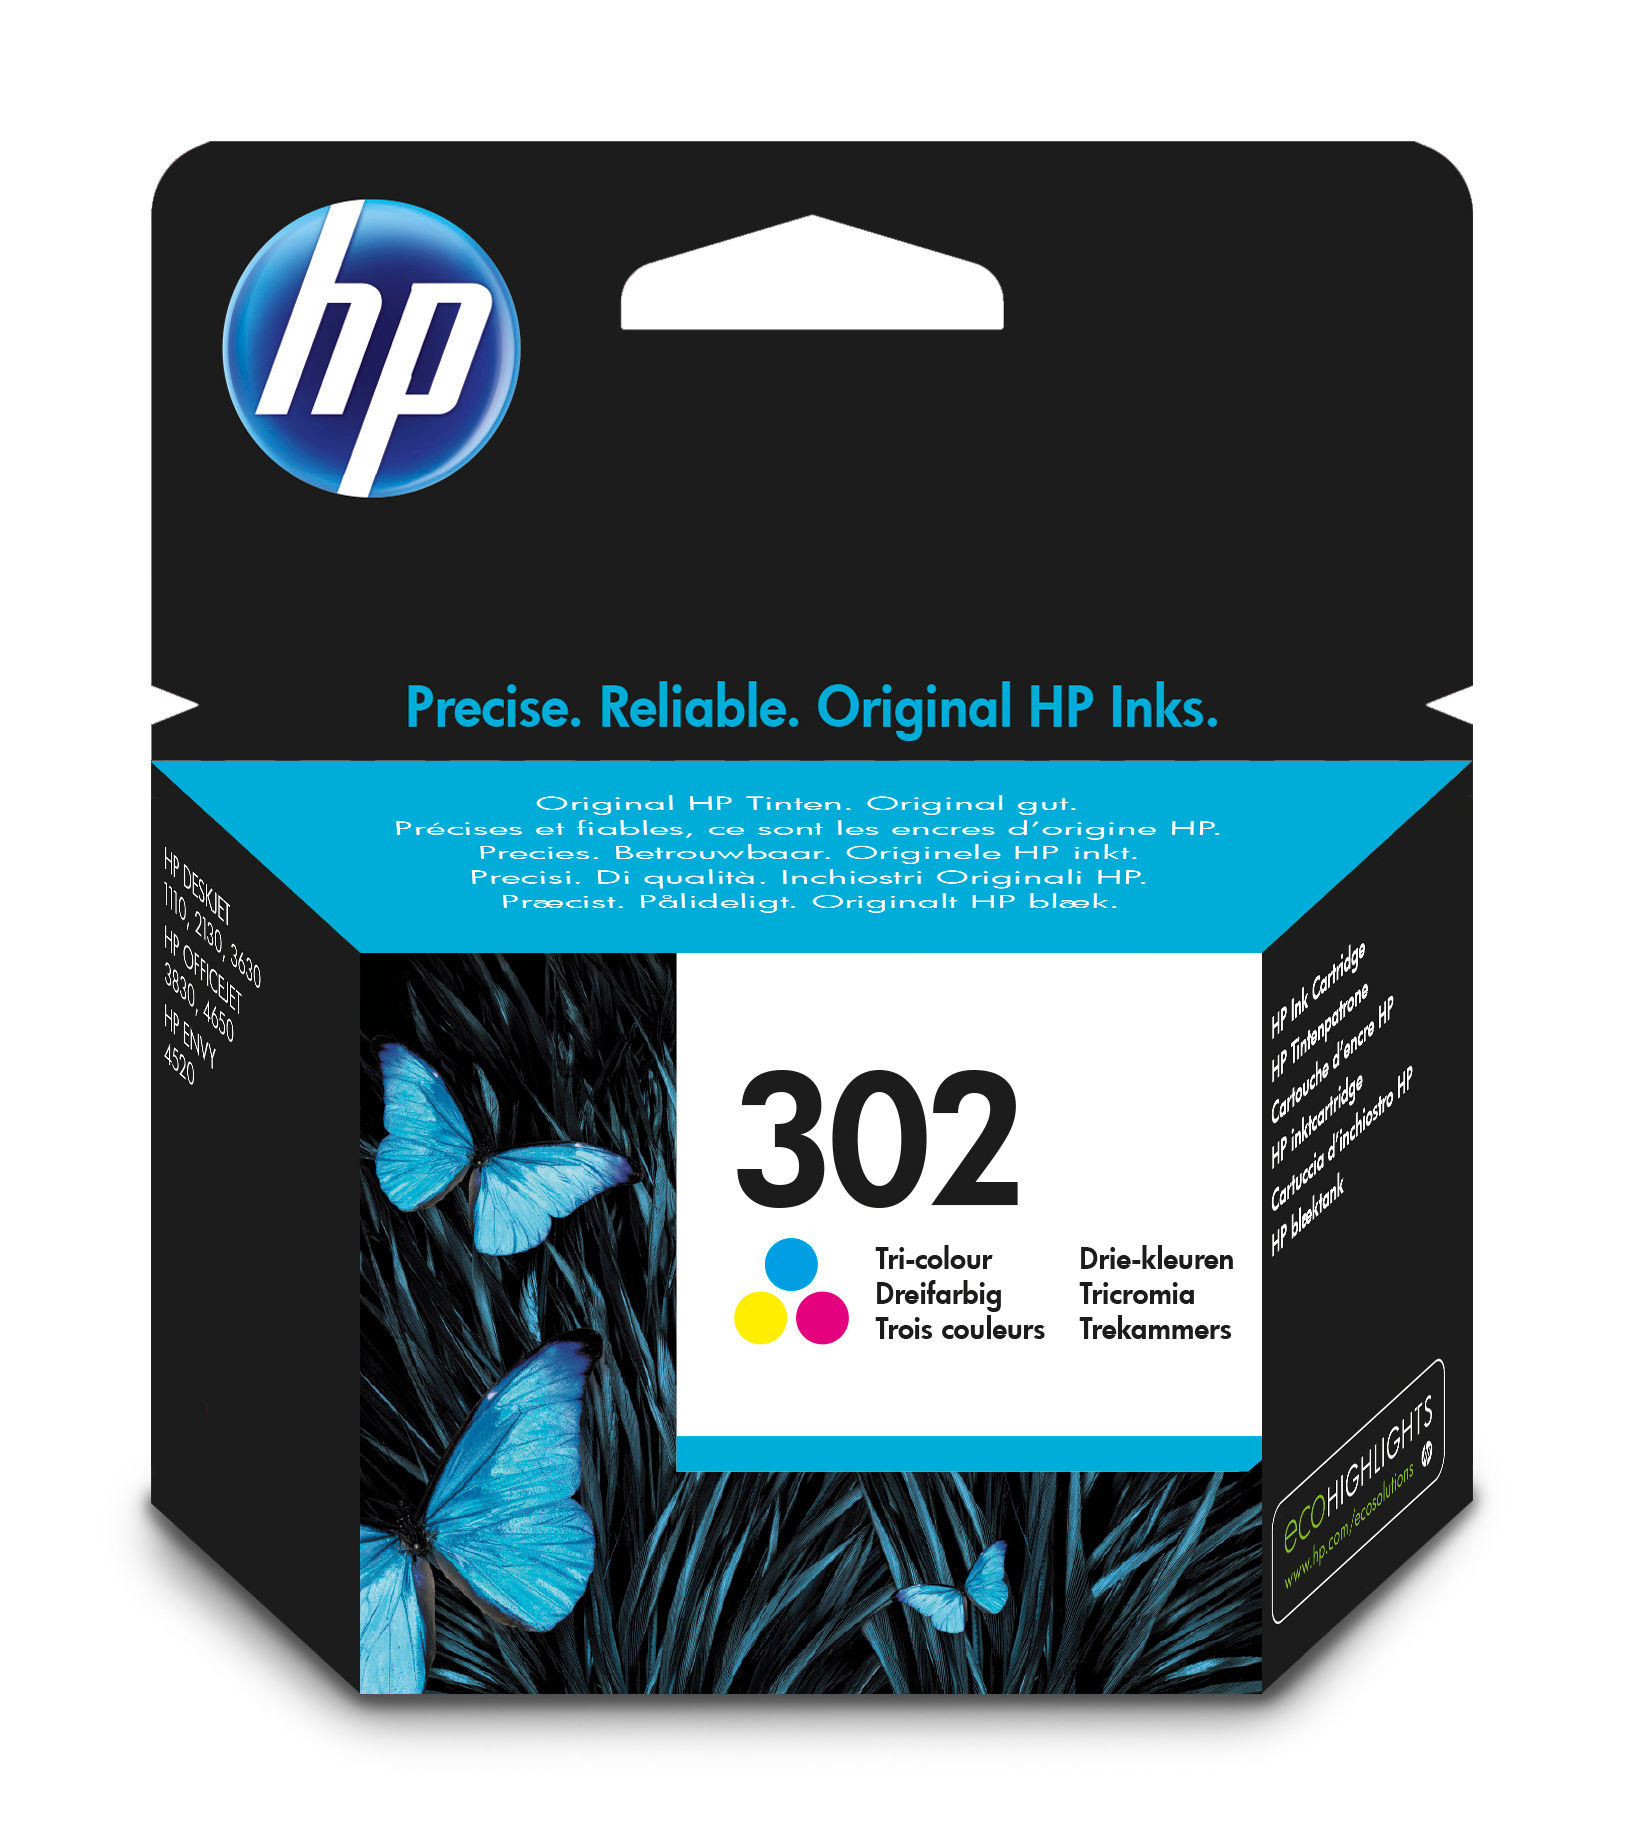 HP 302 - F6U65AE - 1 X Yellow,1 X Cyan,1 X Magenta - Ink Cartridge - For Officejet 3830 F6U65AE#UUS - C2000